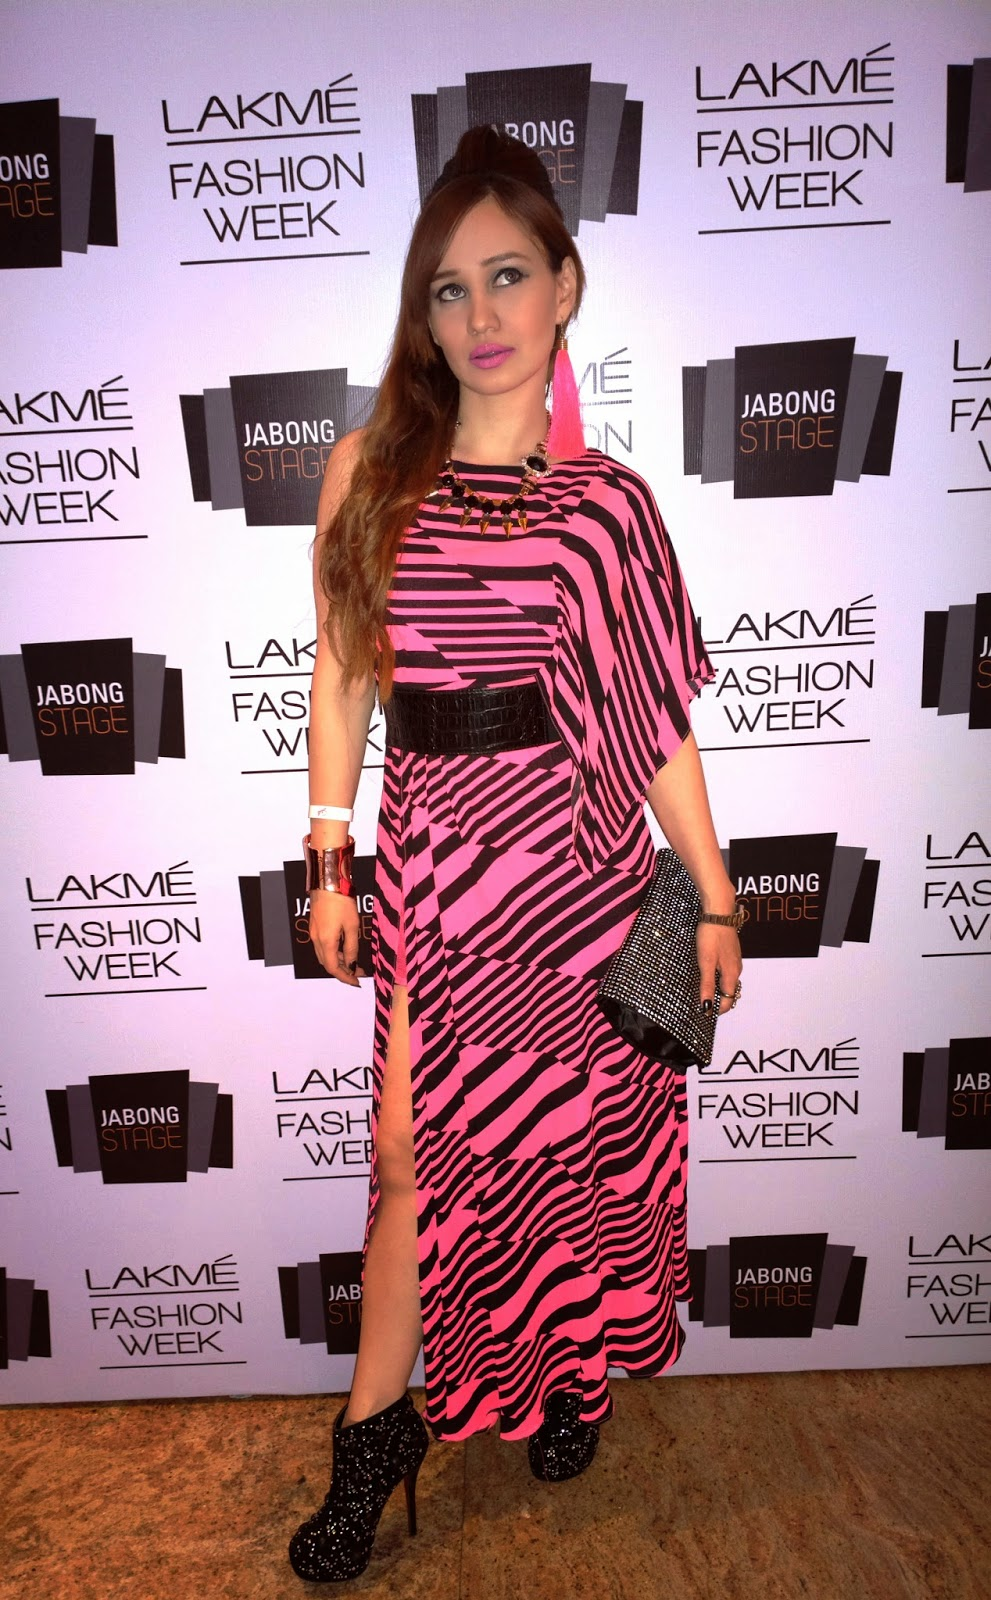 Black & Pink Maxi Dress at Lakme Fashion Week